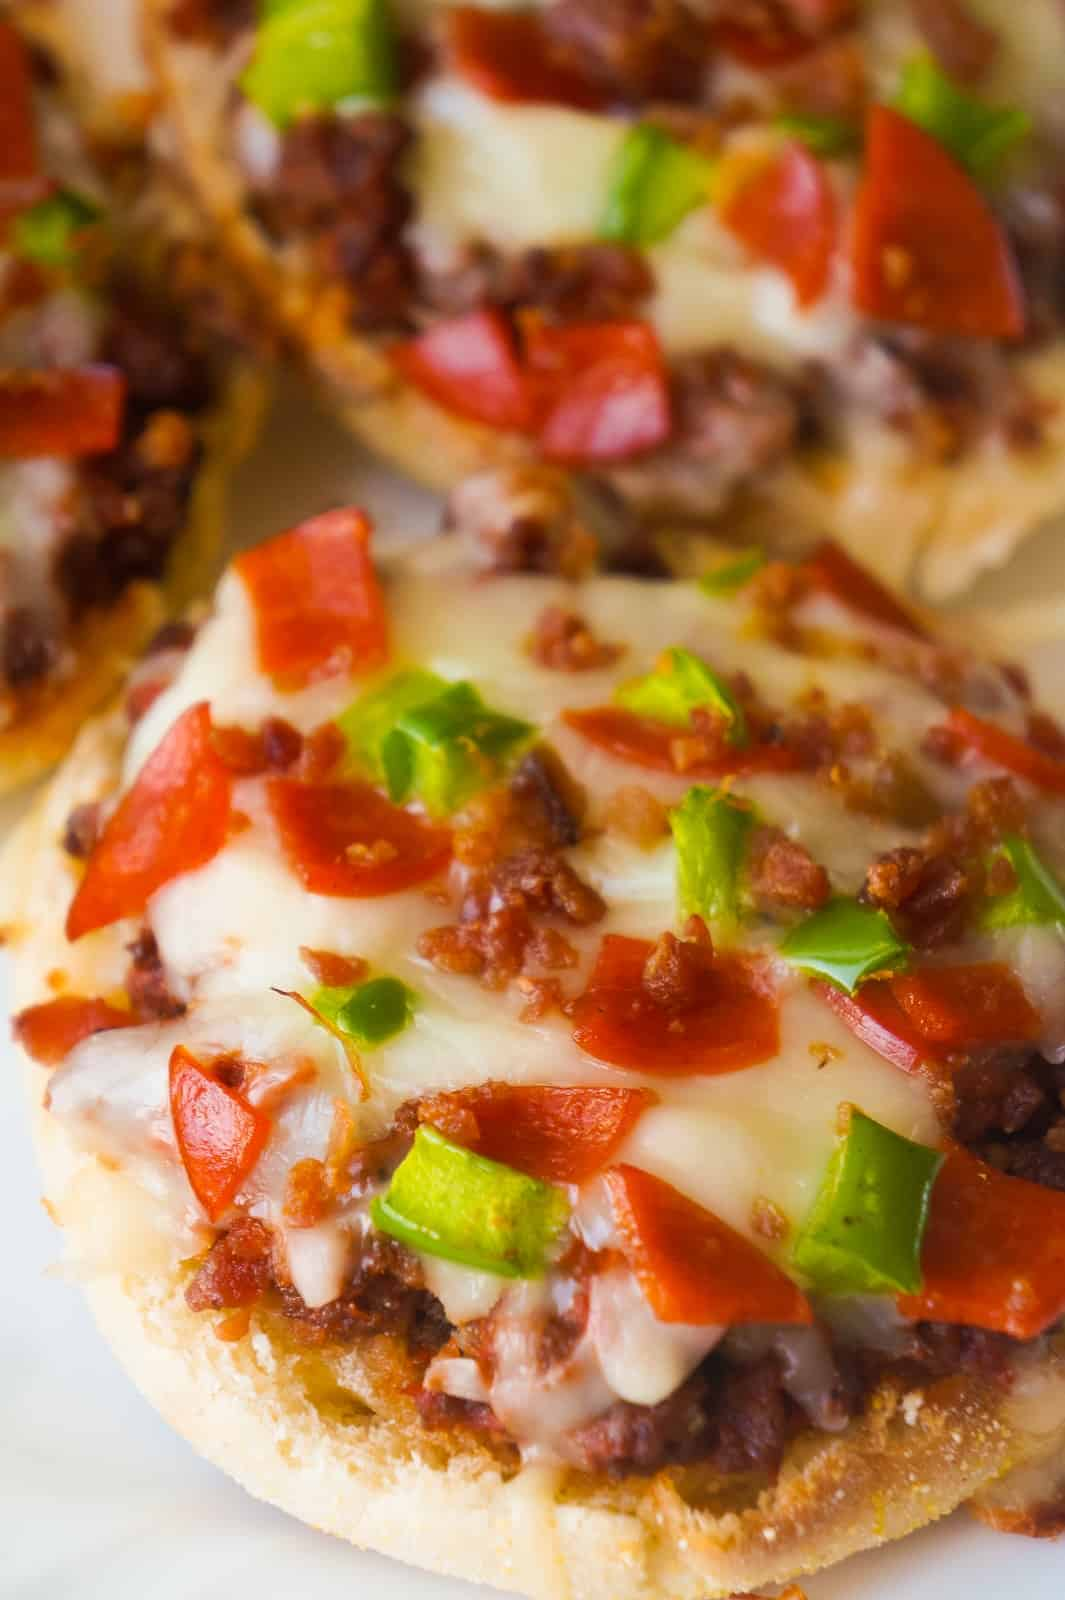 Pizza Burger English muffins are an easy dinner recipe using ground beef. These mini pizzas loaded with bacon and pepperoni are perfect for a weeknight dinner or even as a party snack.